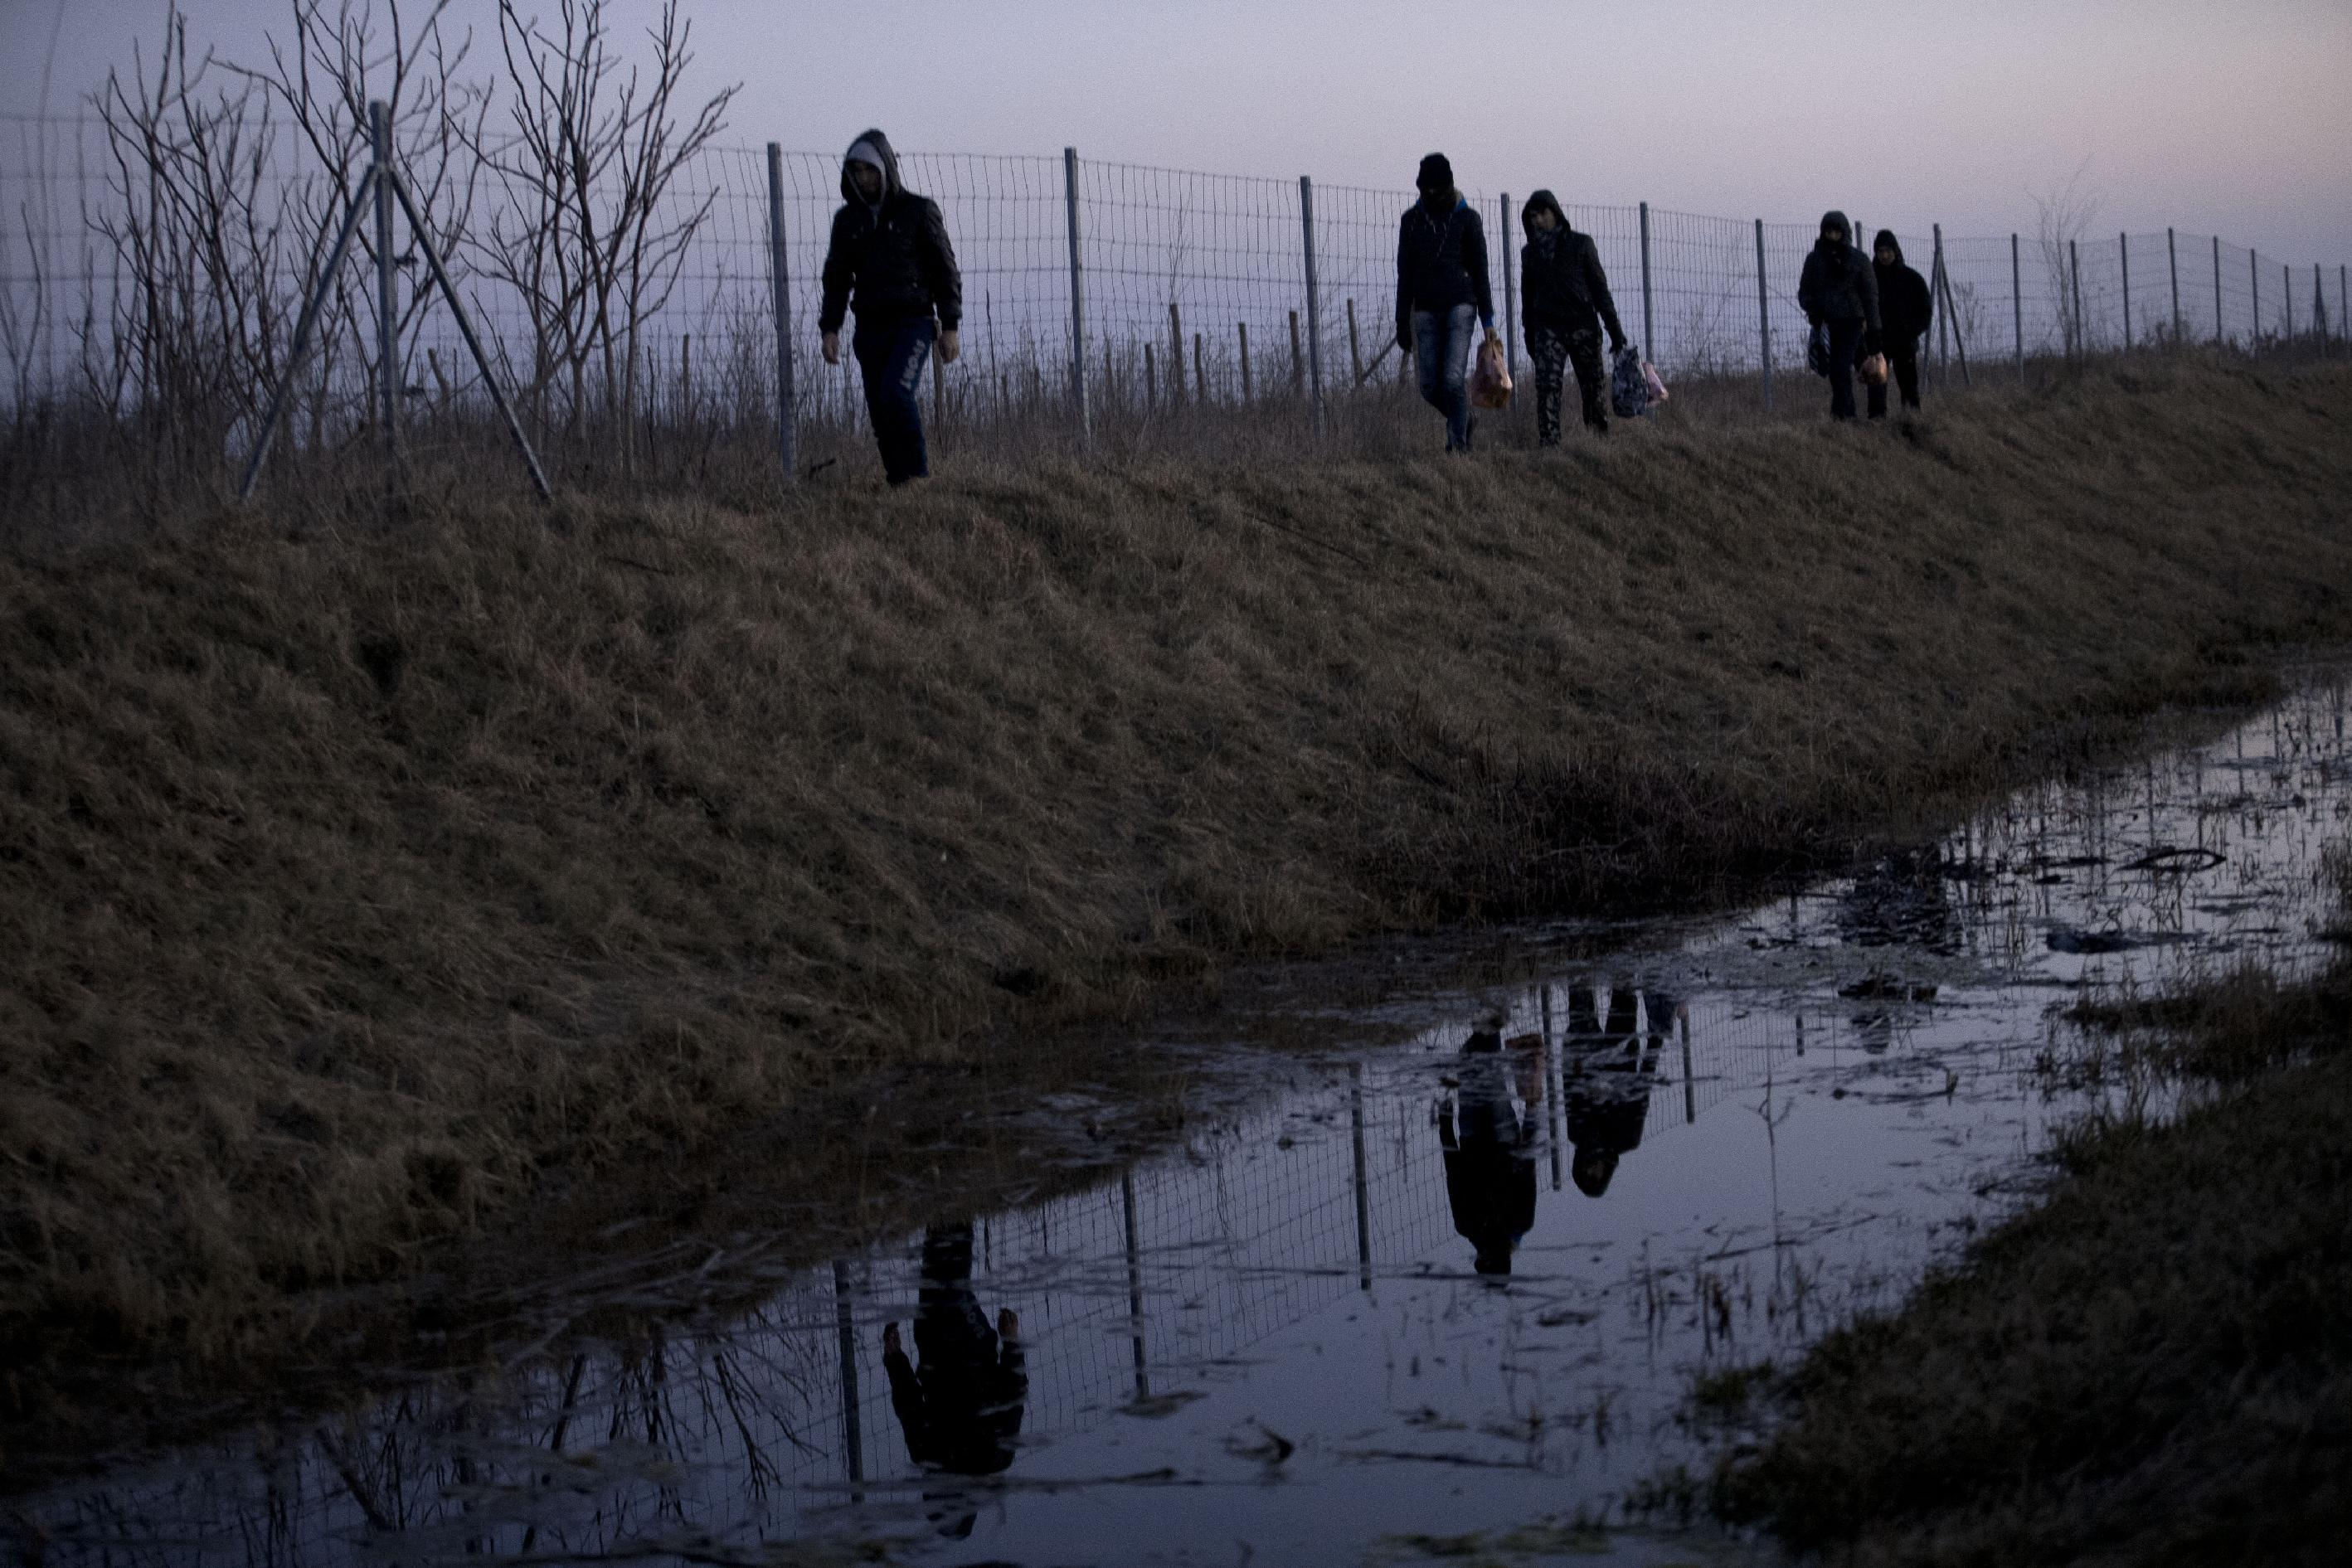 AP PHOTOS: Migrants flock to EU door at Hungary's border